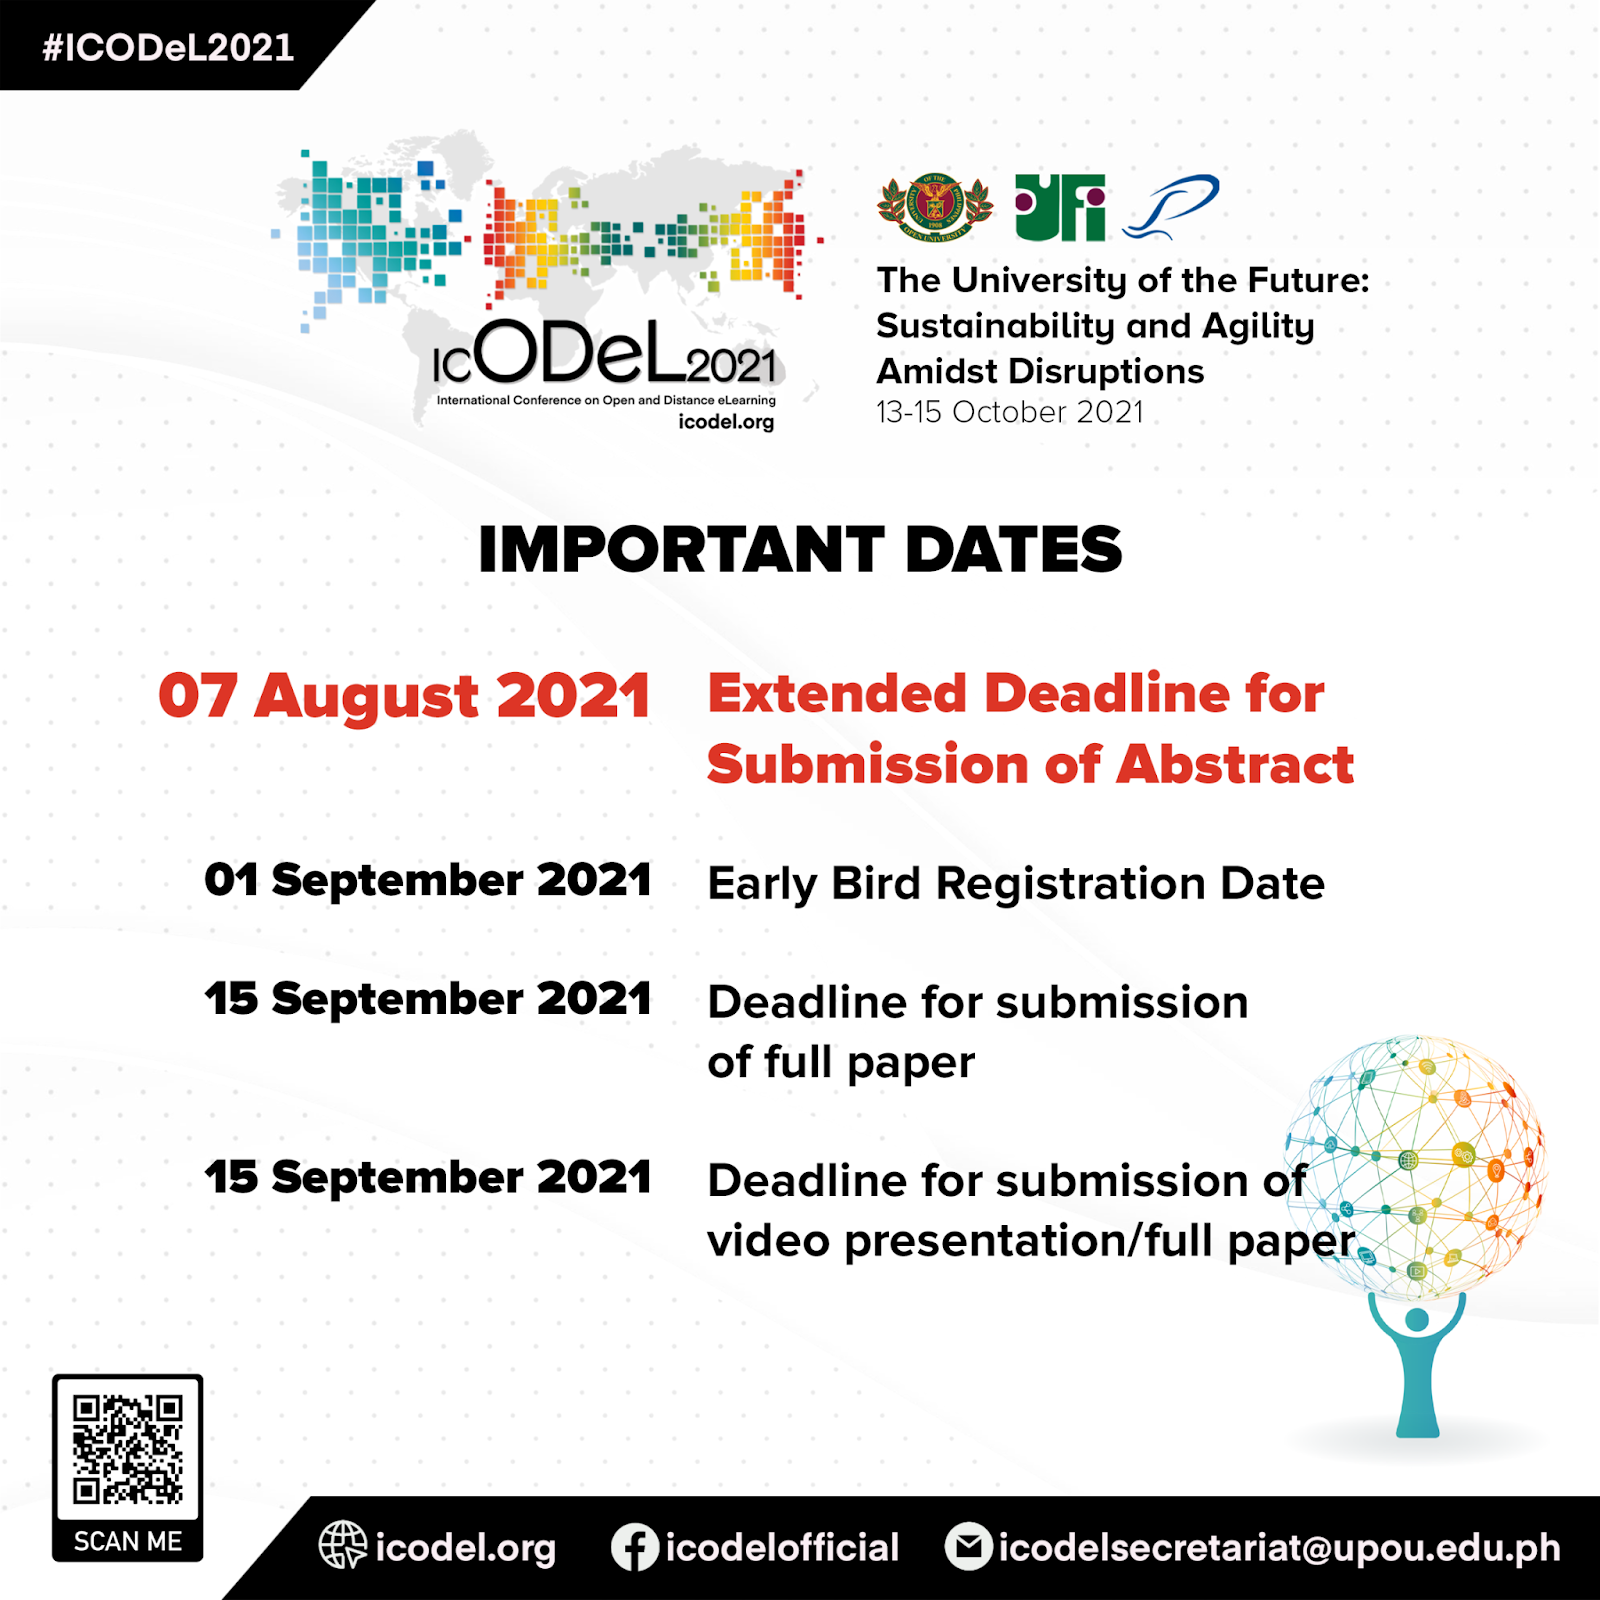 Abstract Submission for ICODeL 2021 is Extended to 7 August 2021